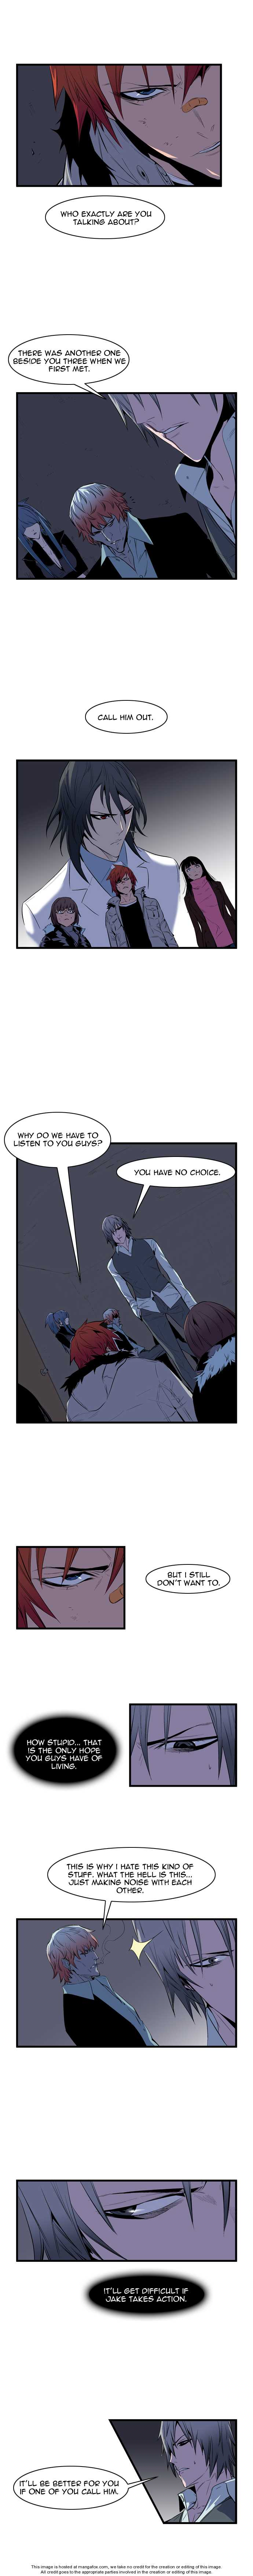 Noblesse 67 Page 2